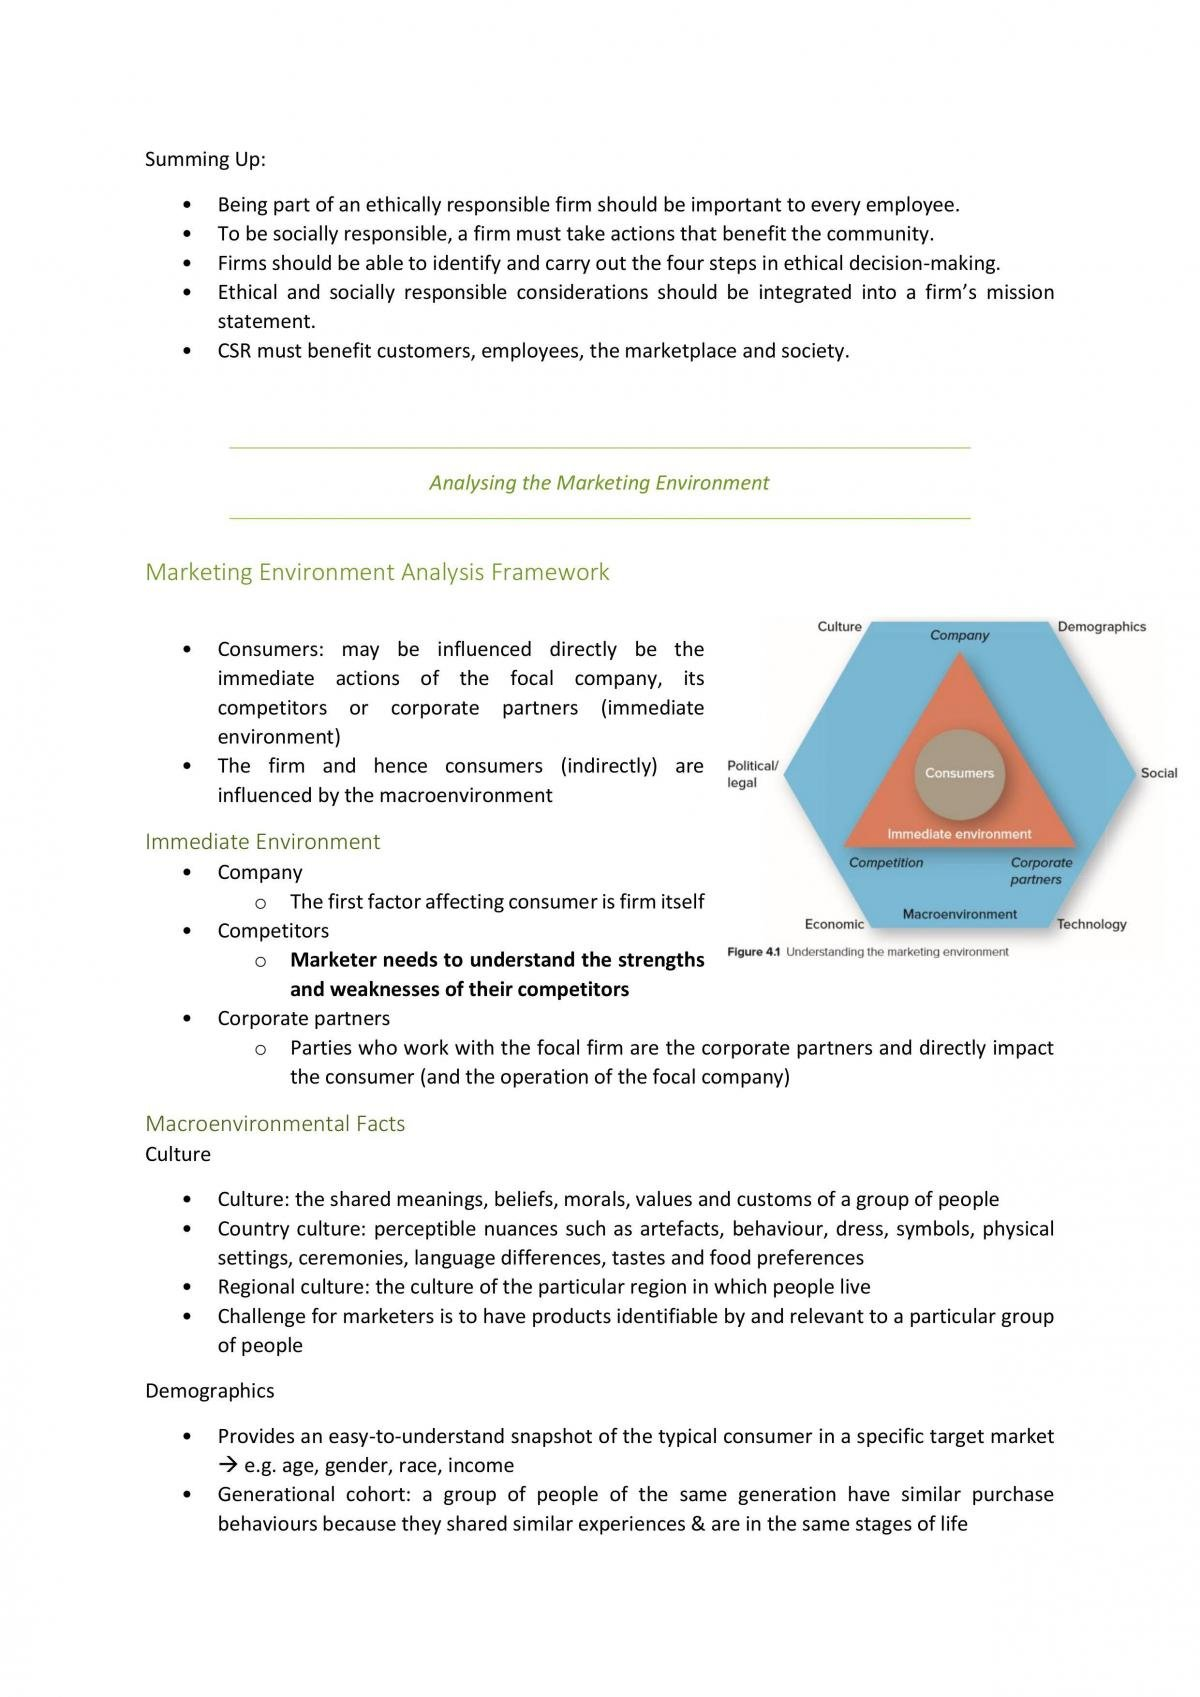 Full Textbook Notes for Marketing Fundamentals - Page 14